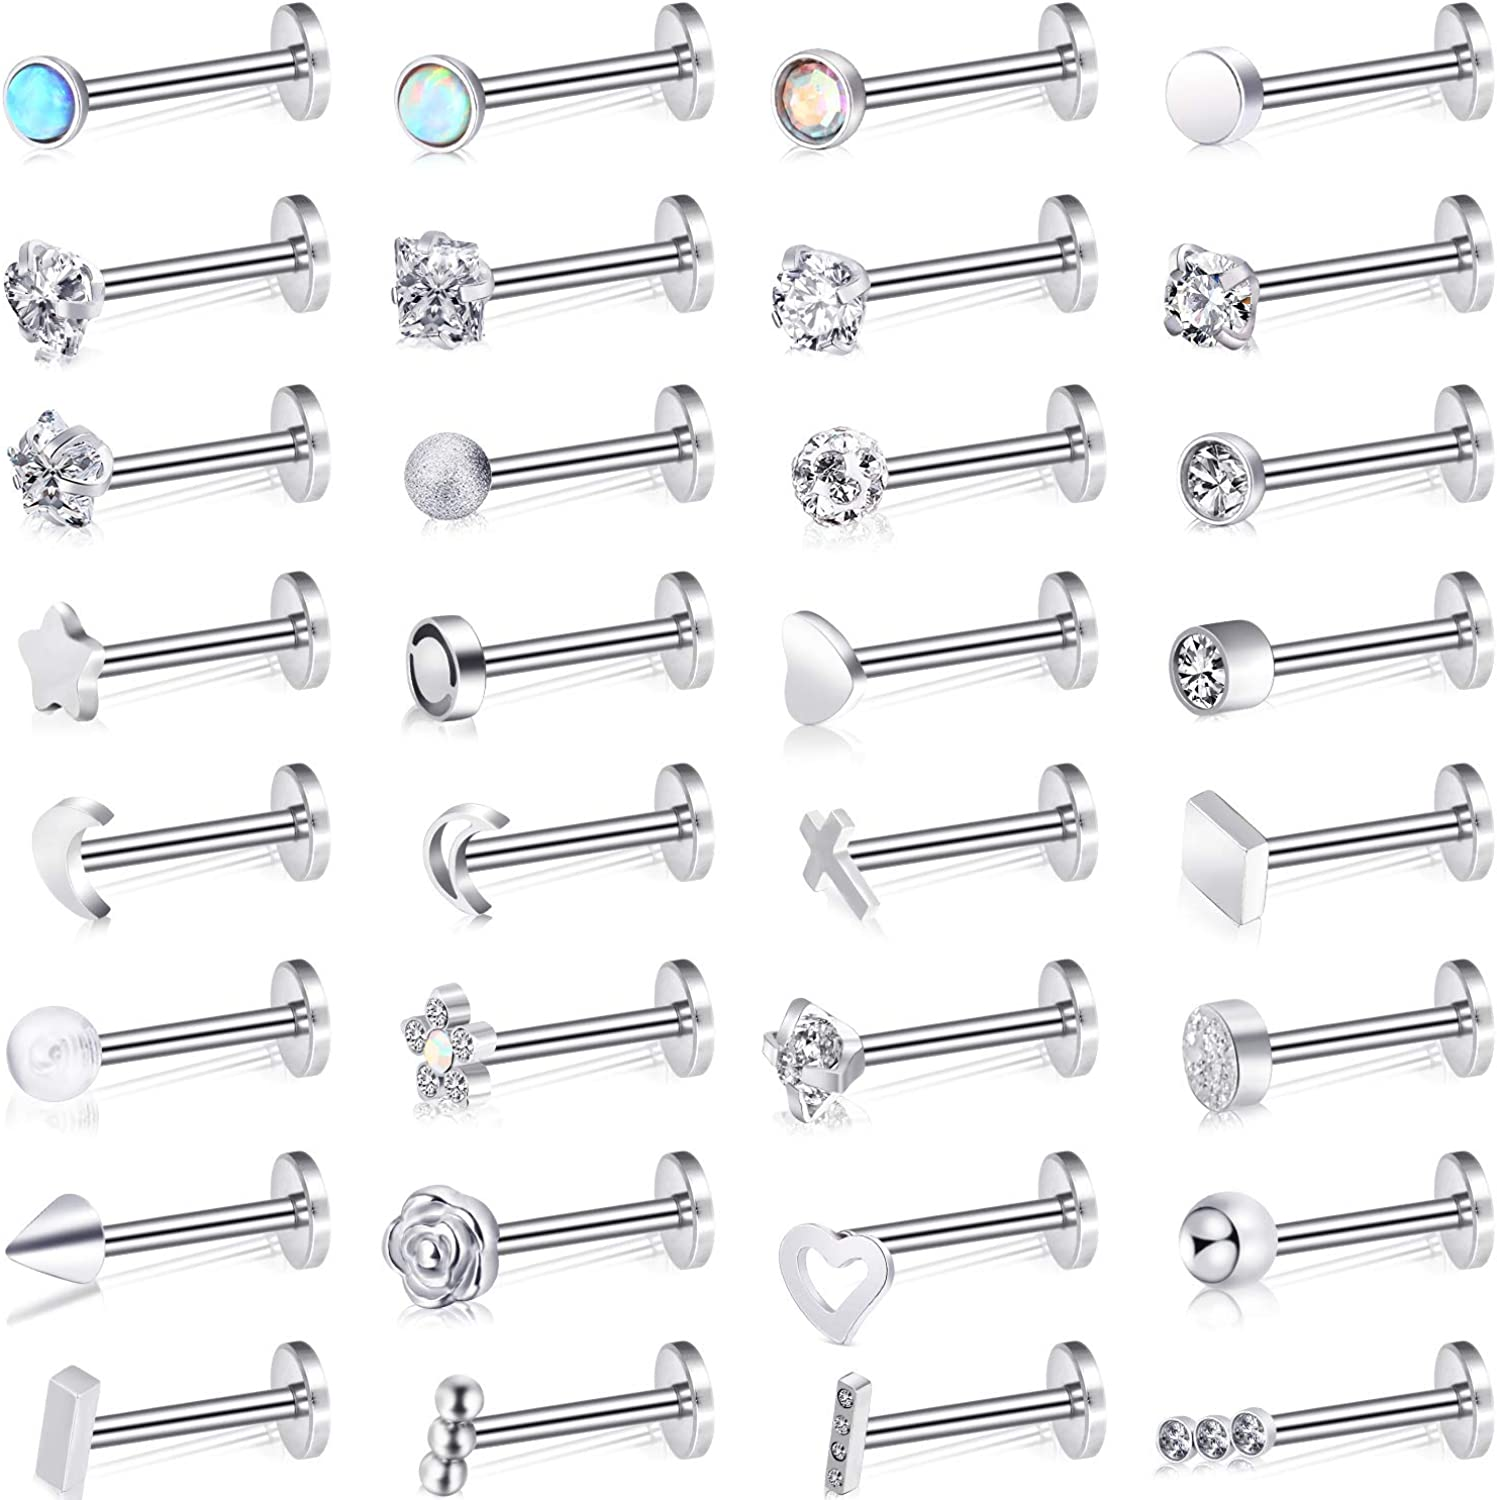 32 Pieces Stainless Steel Cartilage Labret L-Shaped Nose Studs C-Shaped Nose Earrings for Women Men